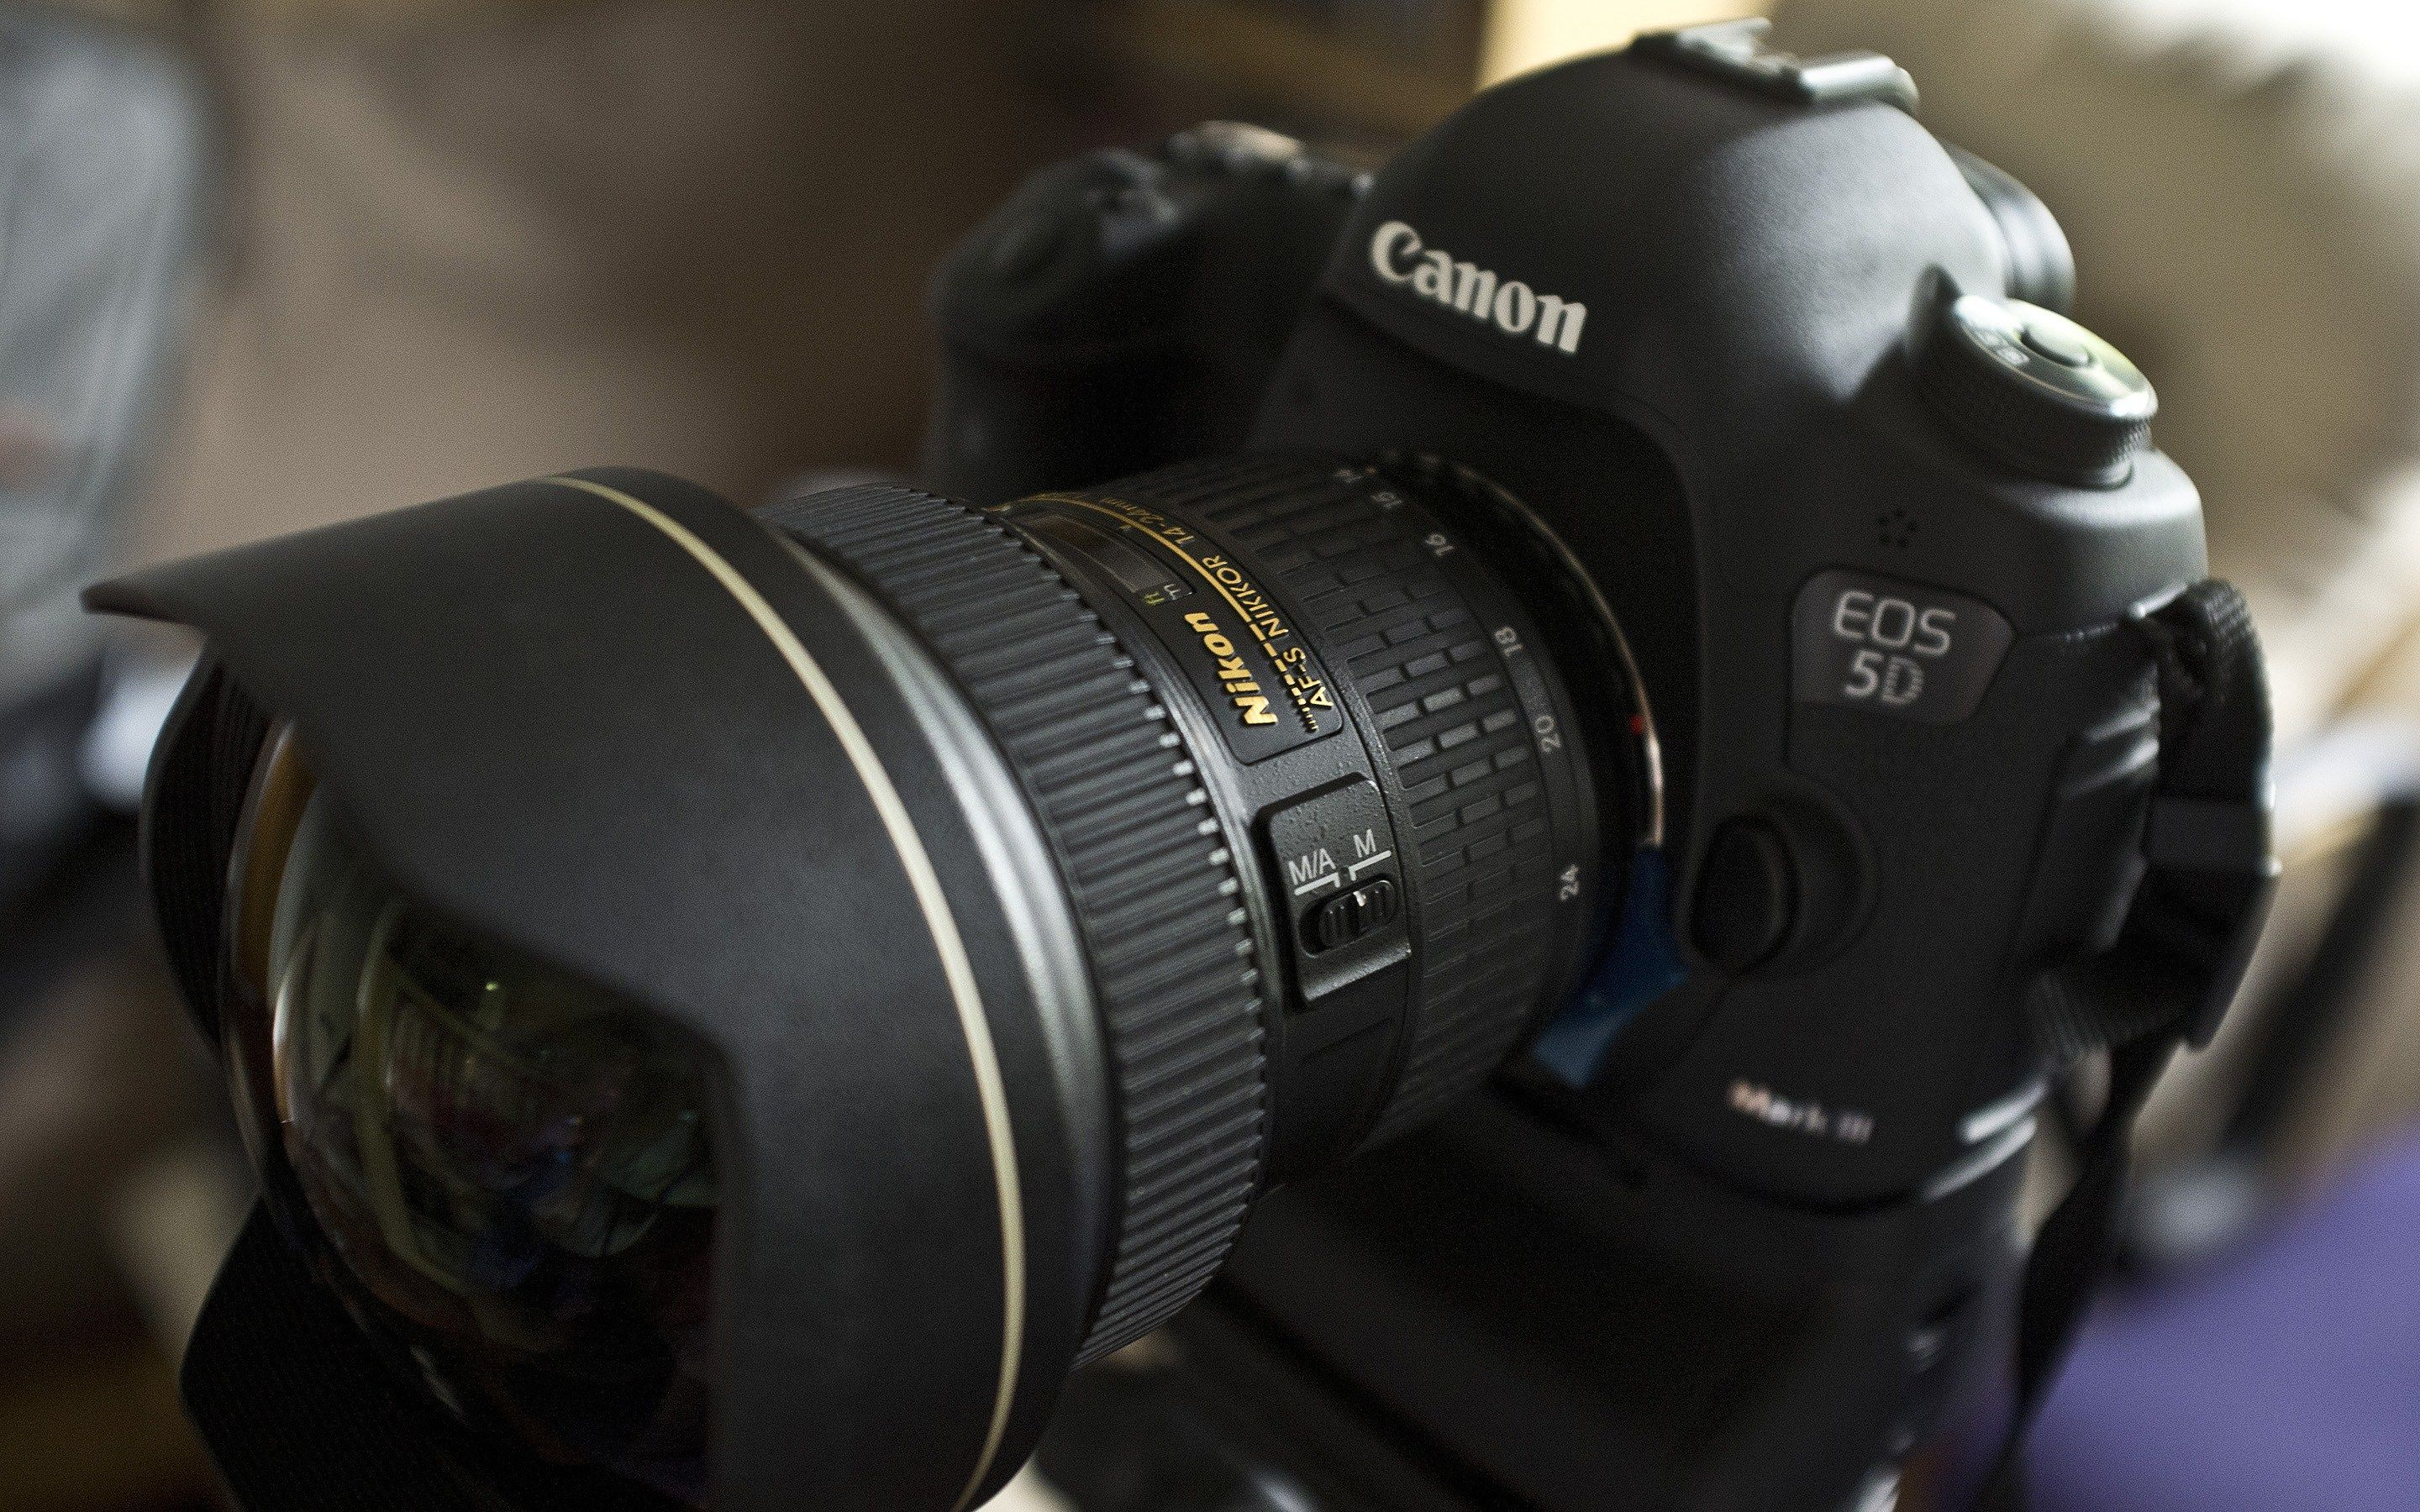 Canon Dslr Wallpaper Hd Canon Dslr Hd Wallpapers Pinterest